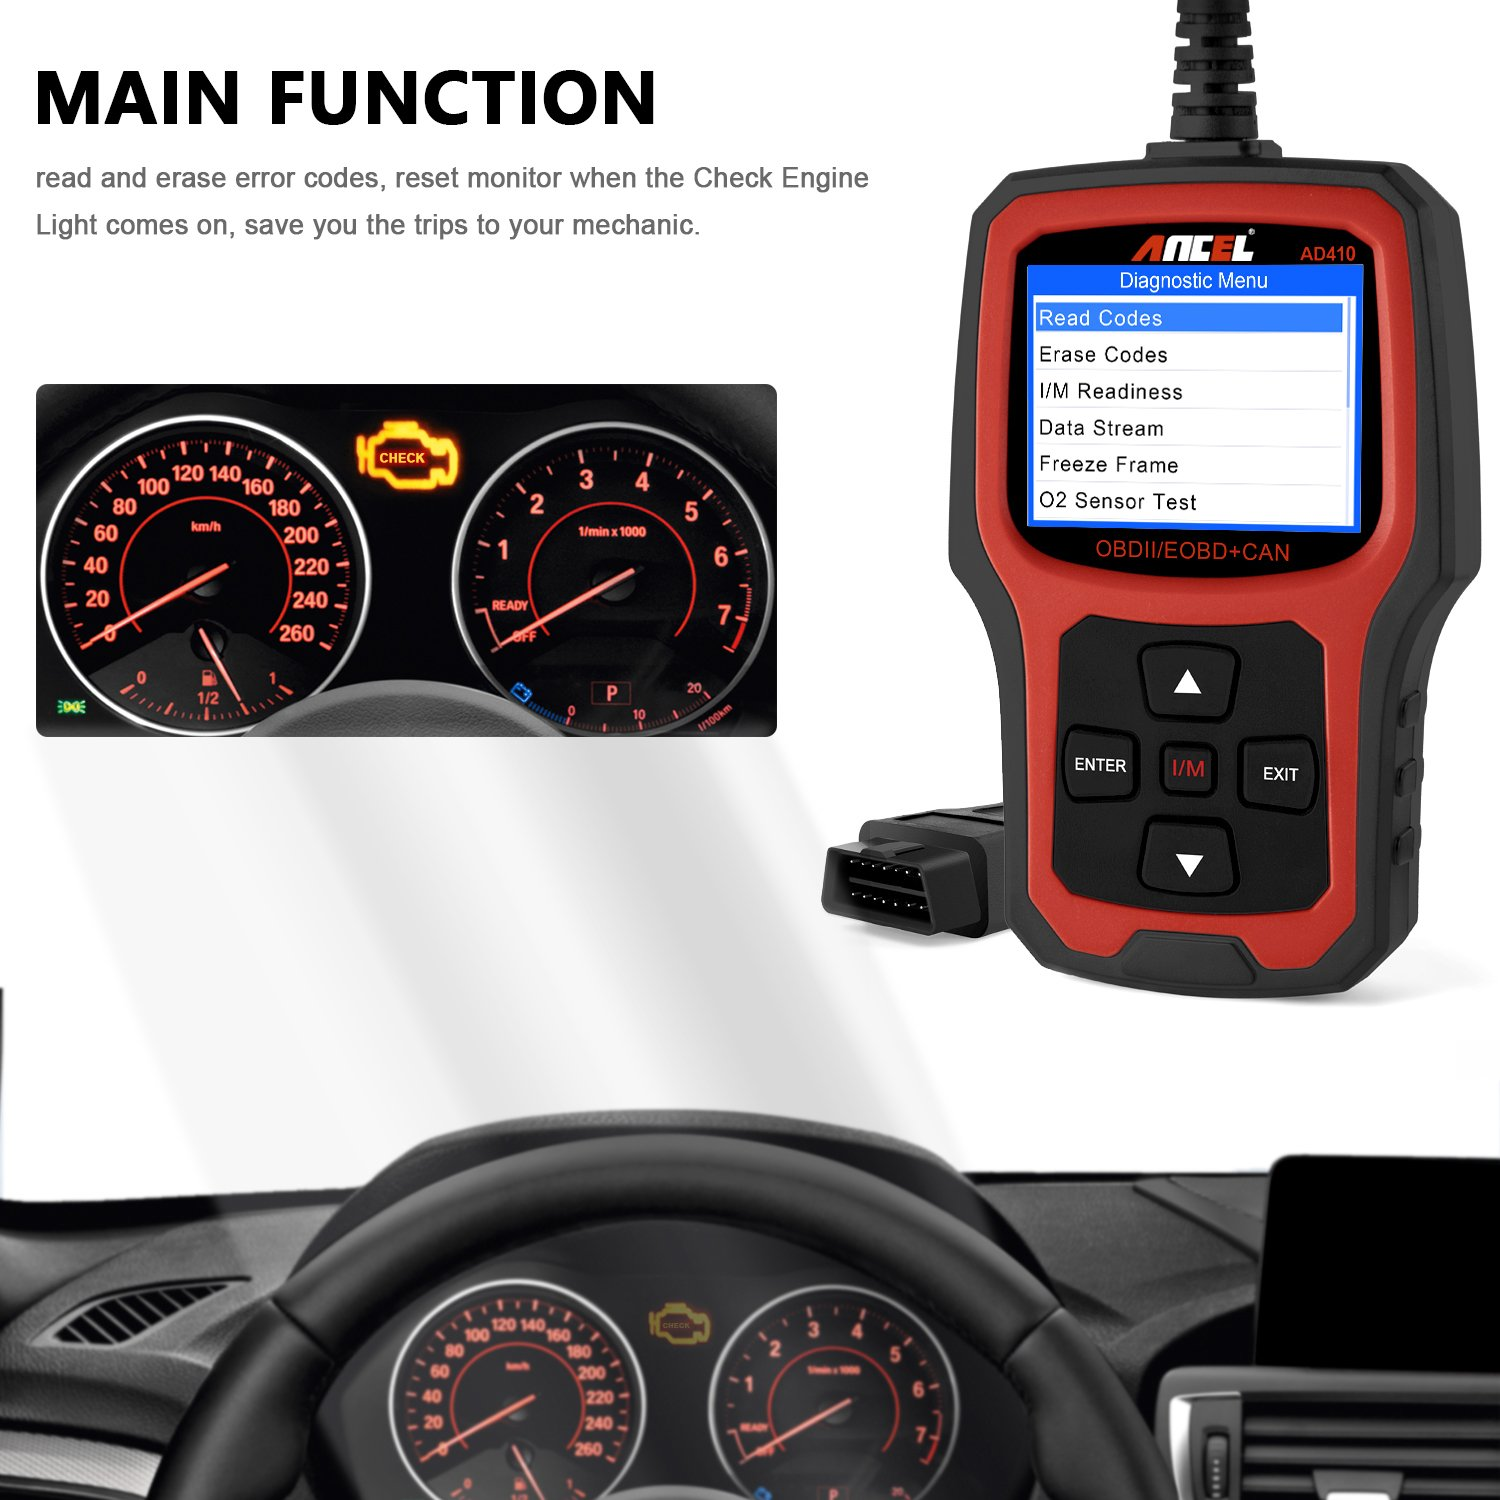 ANCEL AD410 OBD II Vehicle Check Engine Light Scan Tool Automotive Code Reader Auto OBD2 Scanner with I/M Readiness (Black-Red) by ANCEL (Image #2)